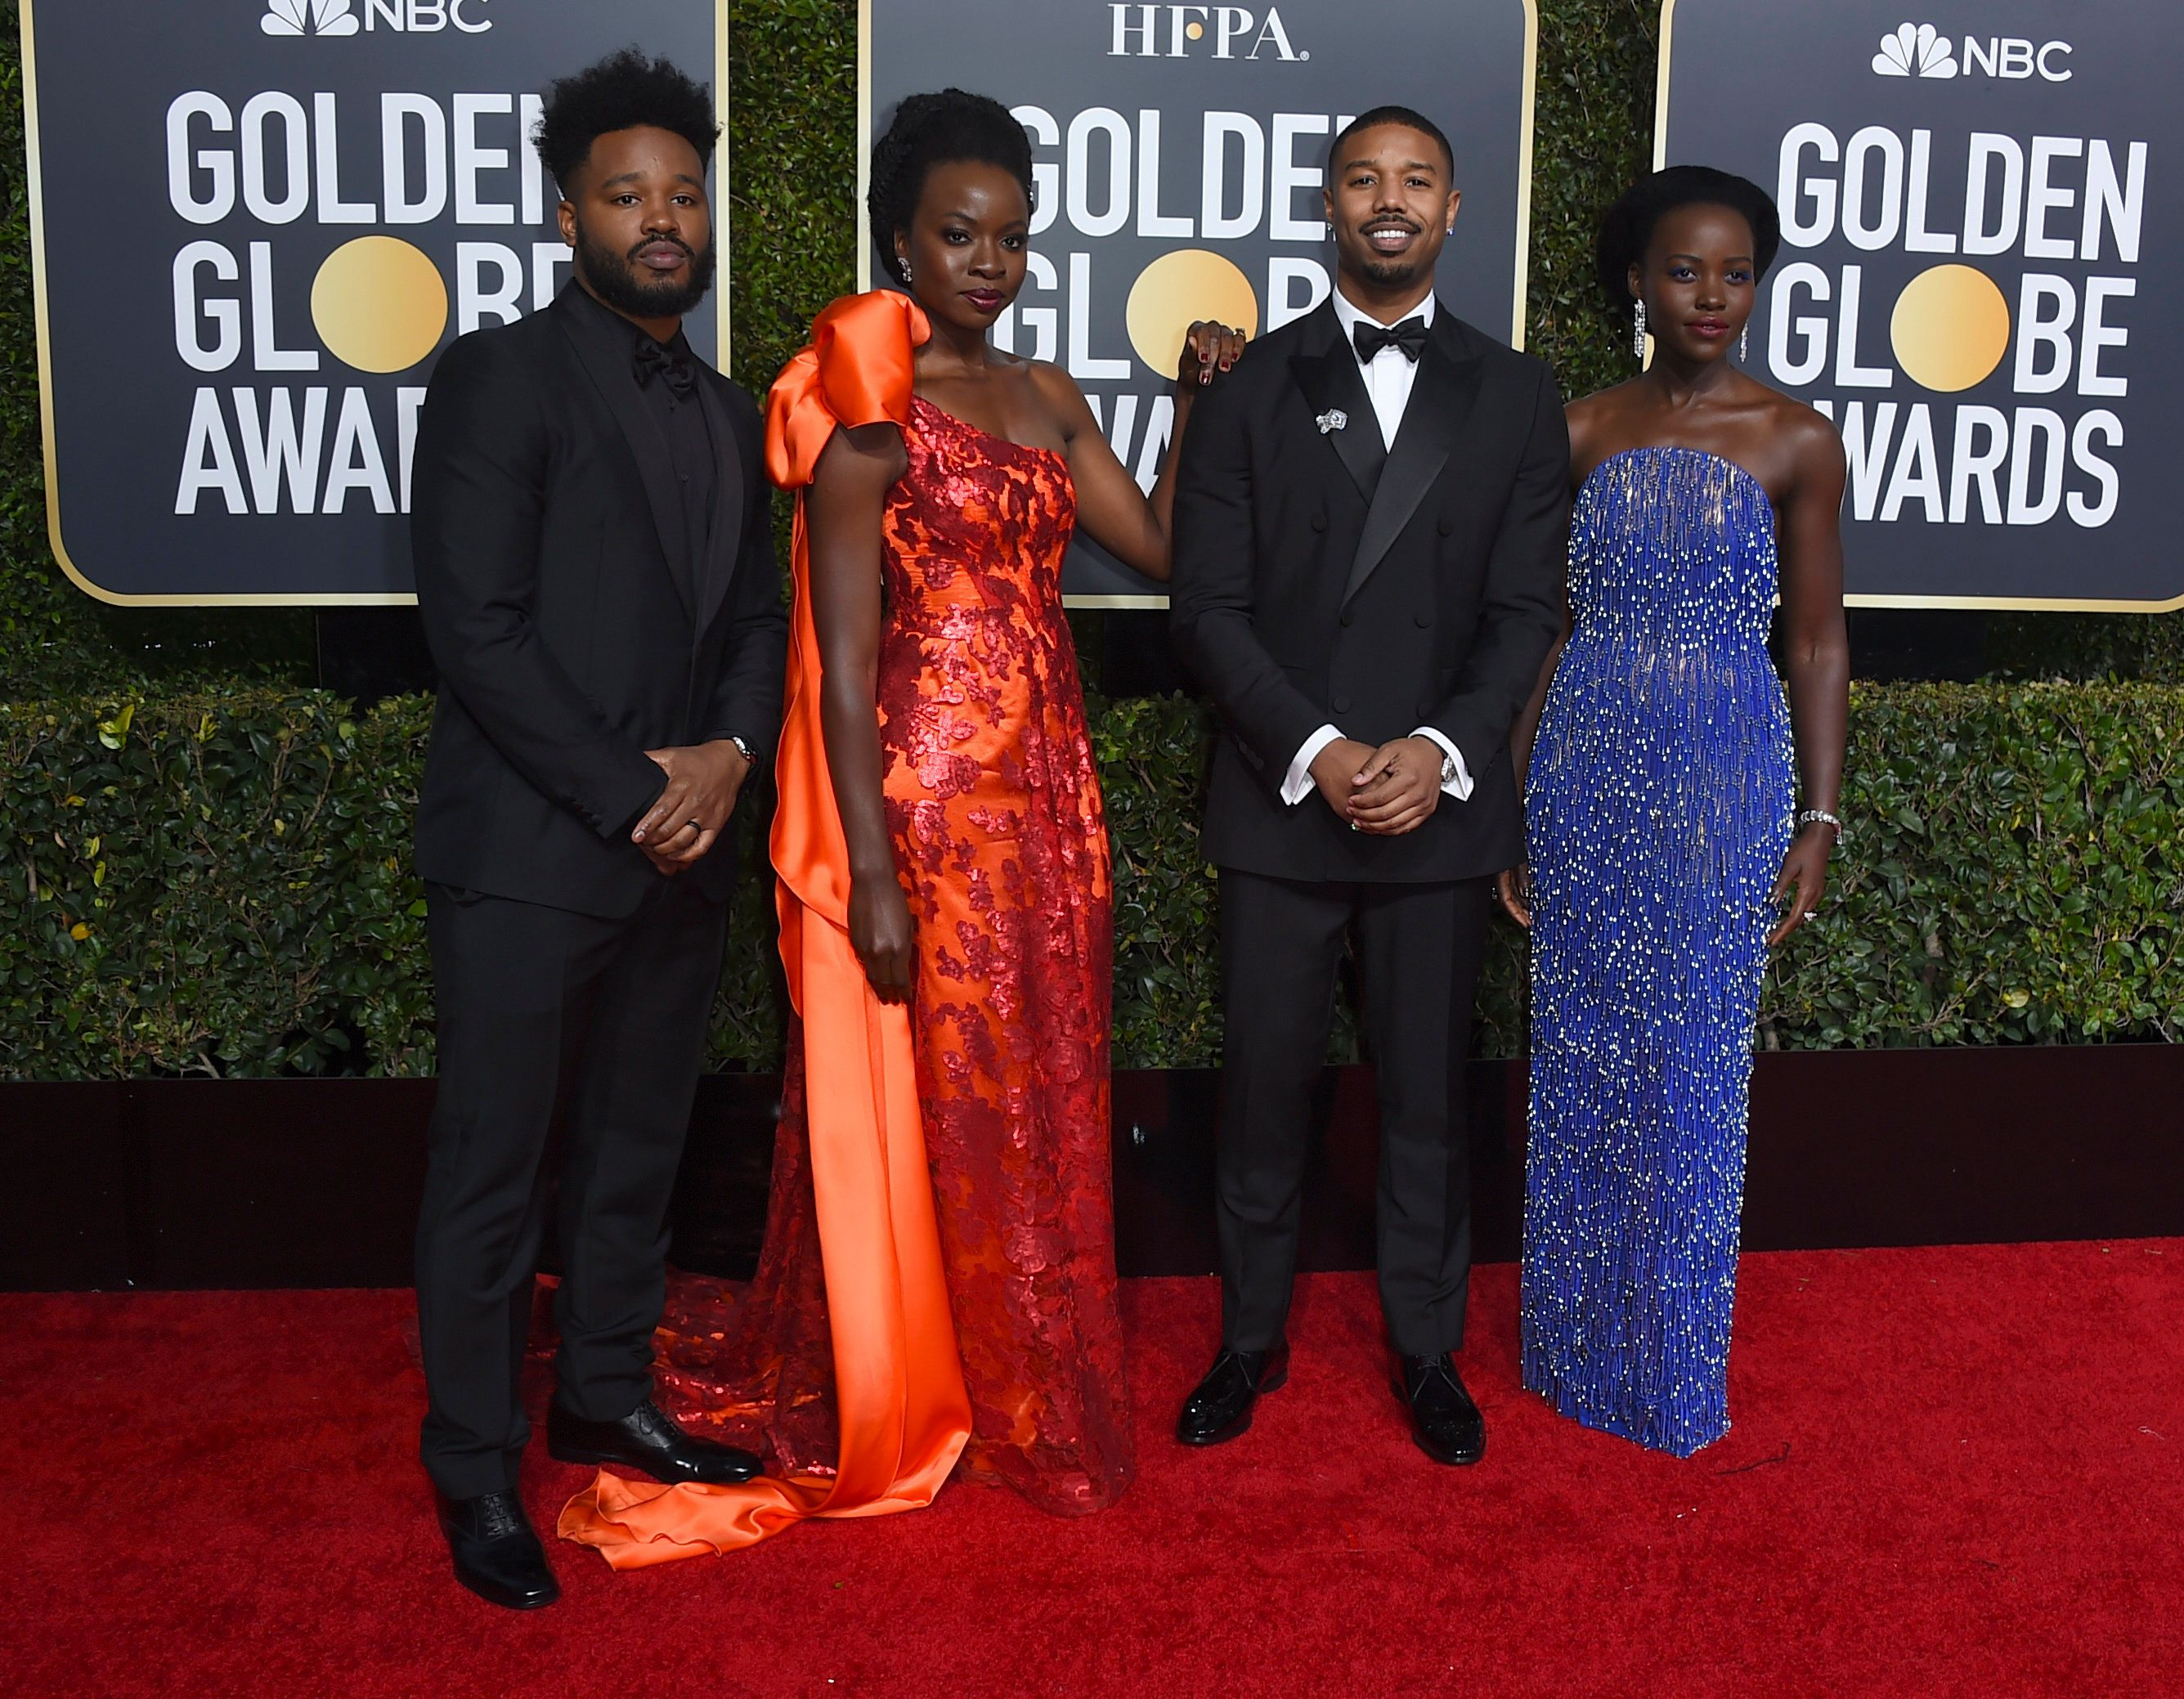 Wakanda forever! Black Panther cast arrives at Golden Globes